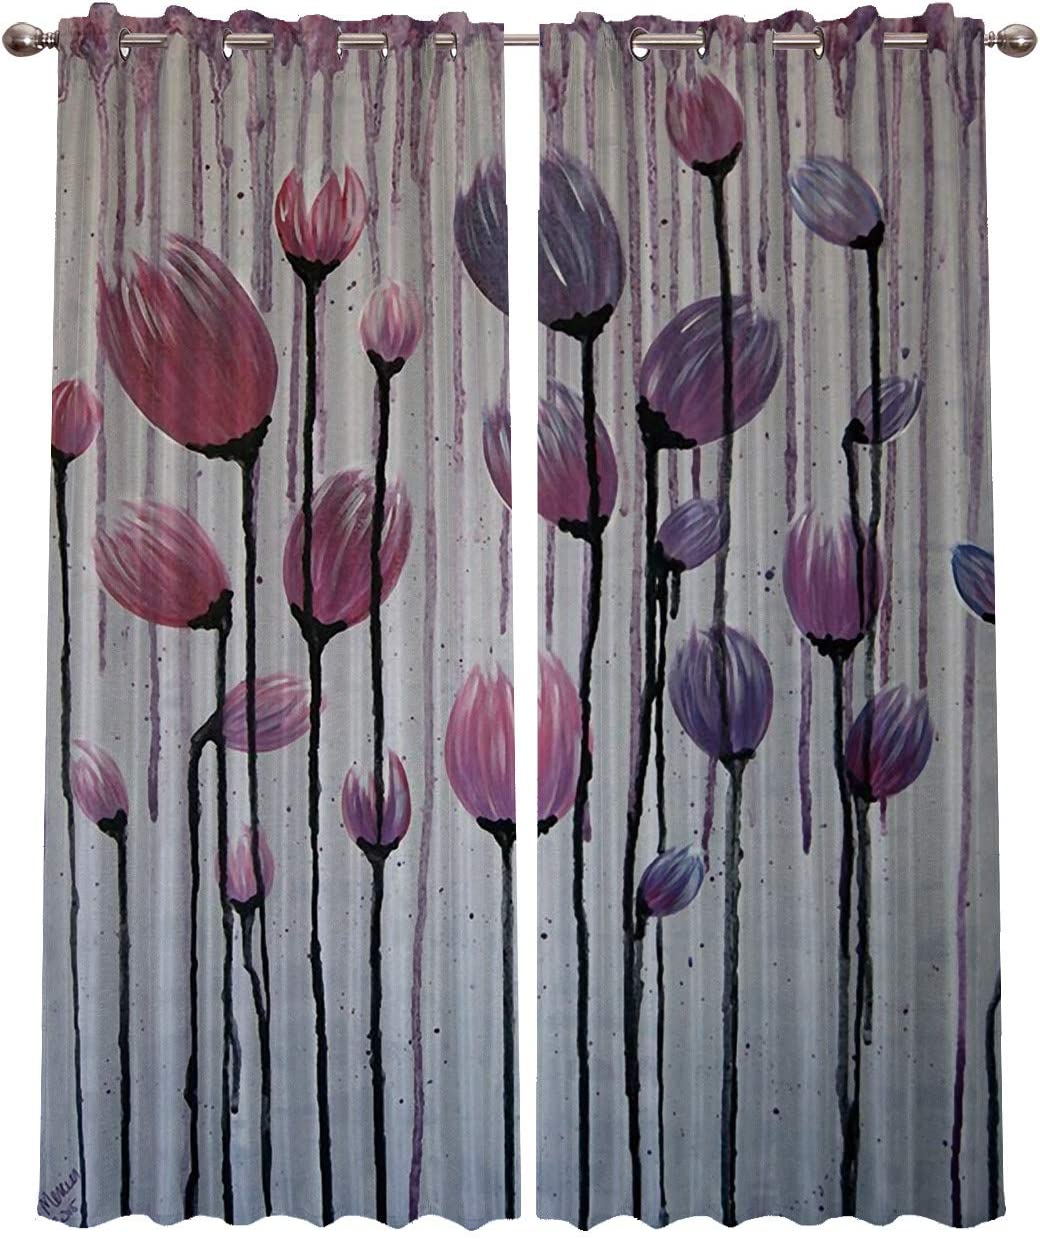 Blackout Curtains Window Treatment Curtain of 2 Panels Abstact Floral Grunge Room Darkening Curtains and Drapes for Living Room Bedroom Decor 52×96 Inch x2 Panels